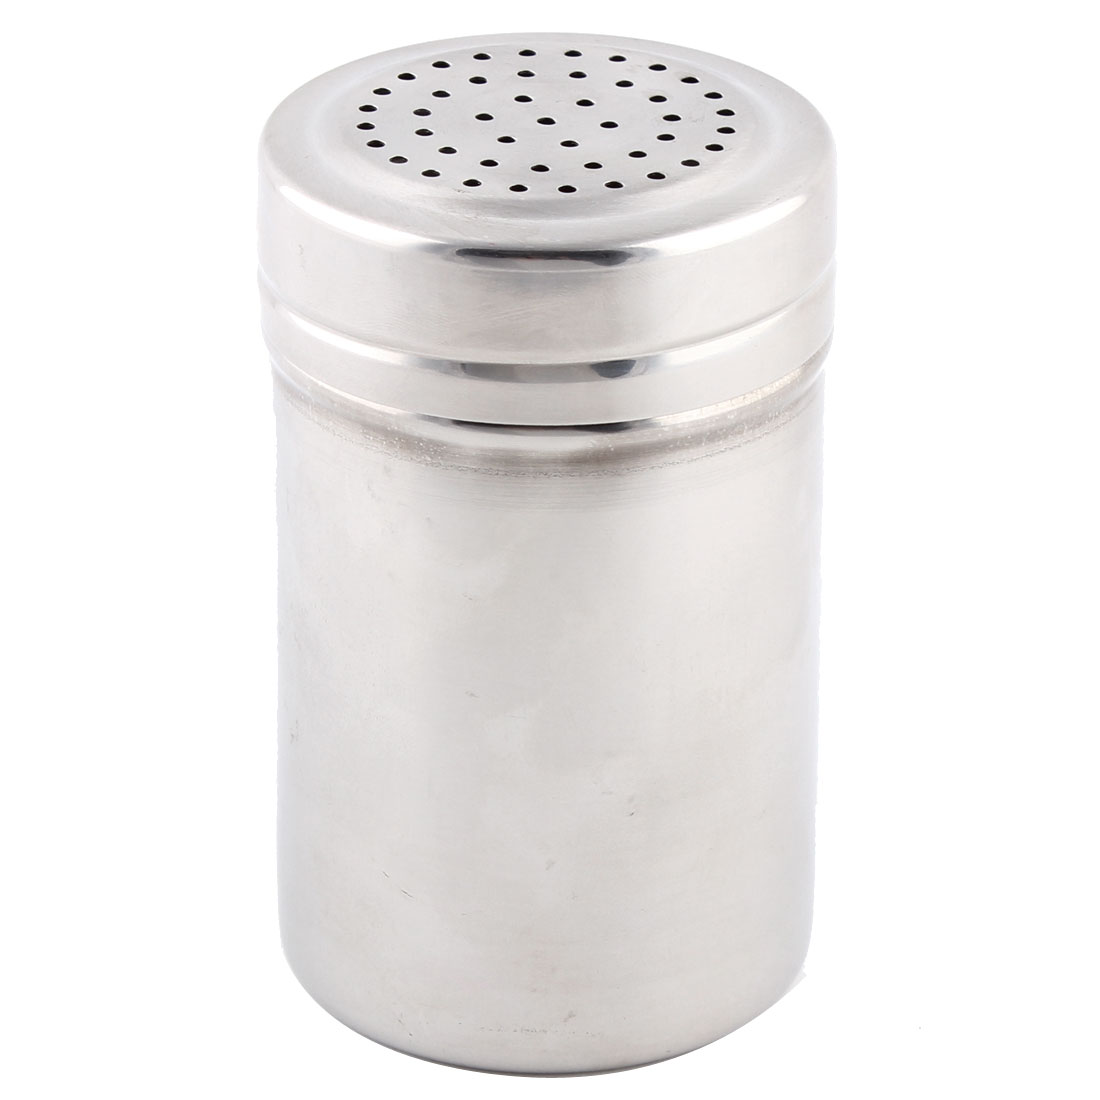 Hotel Stainless Steel Spice Salt Pepper Shaker Condiment Cruet Bottle 4.3 Inch High